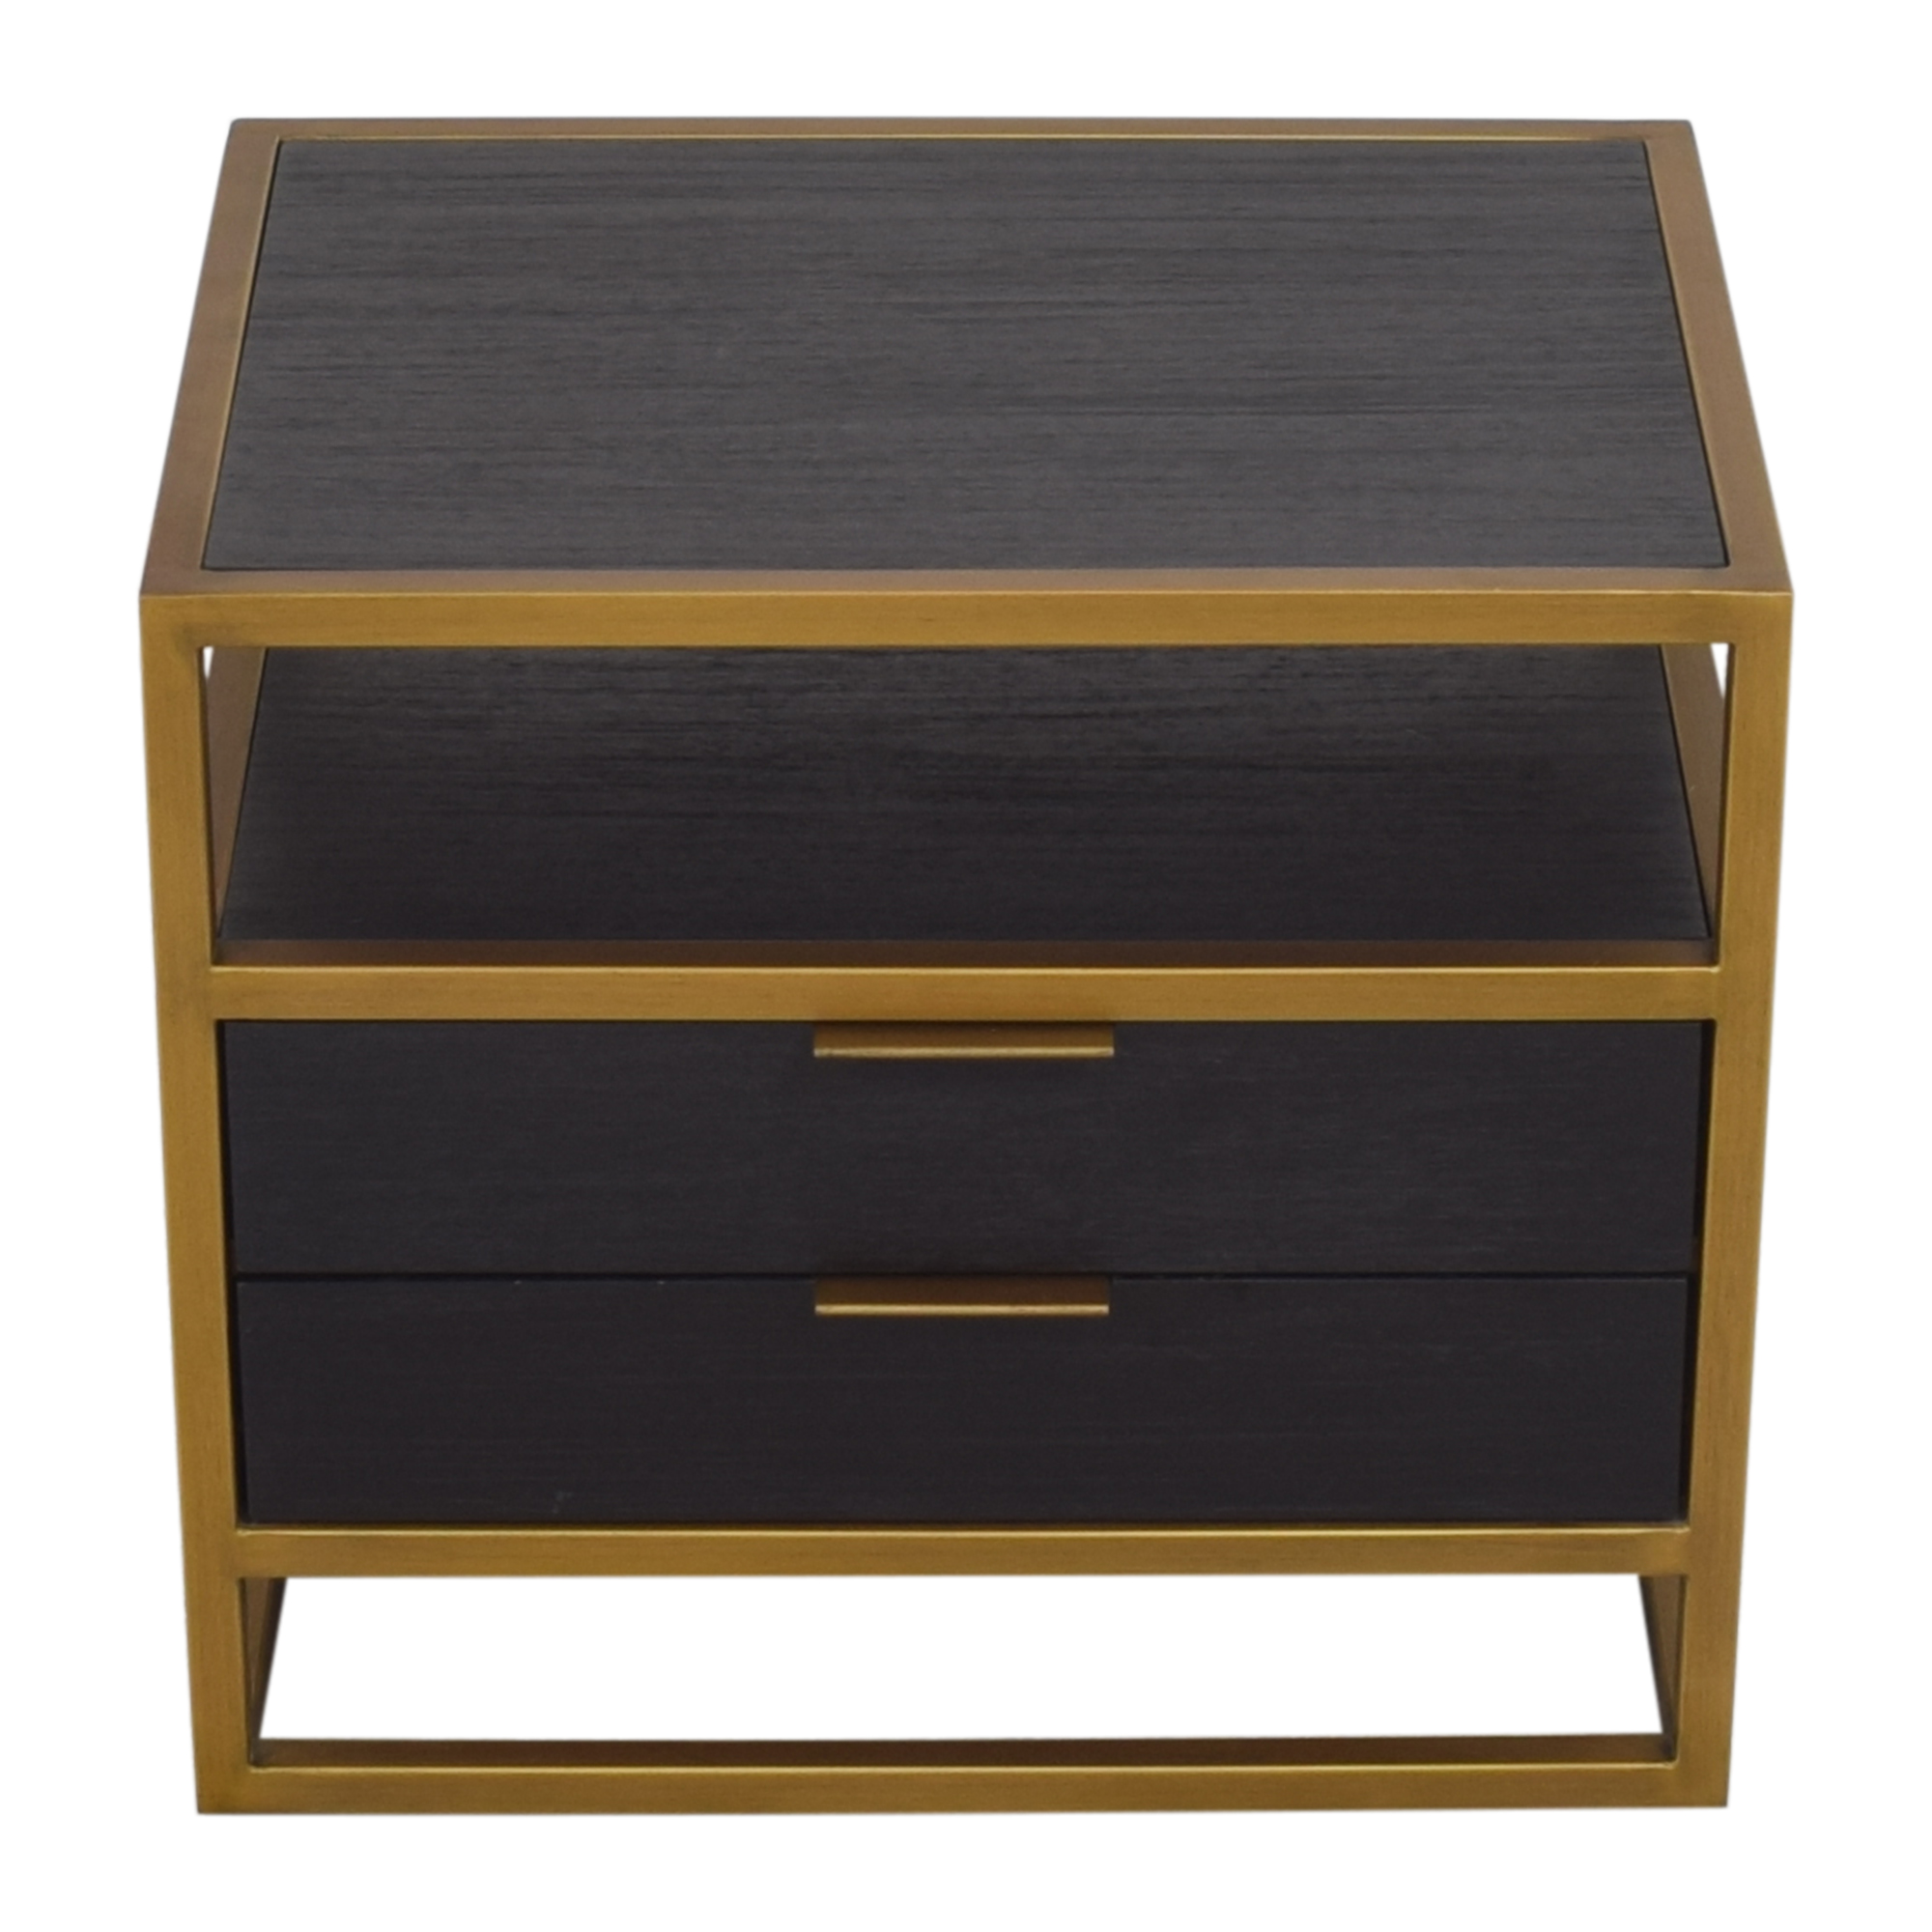 Crate & Barrel Crate & Barrel Oxford Two Drawer Nightstand ma